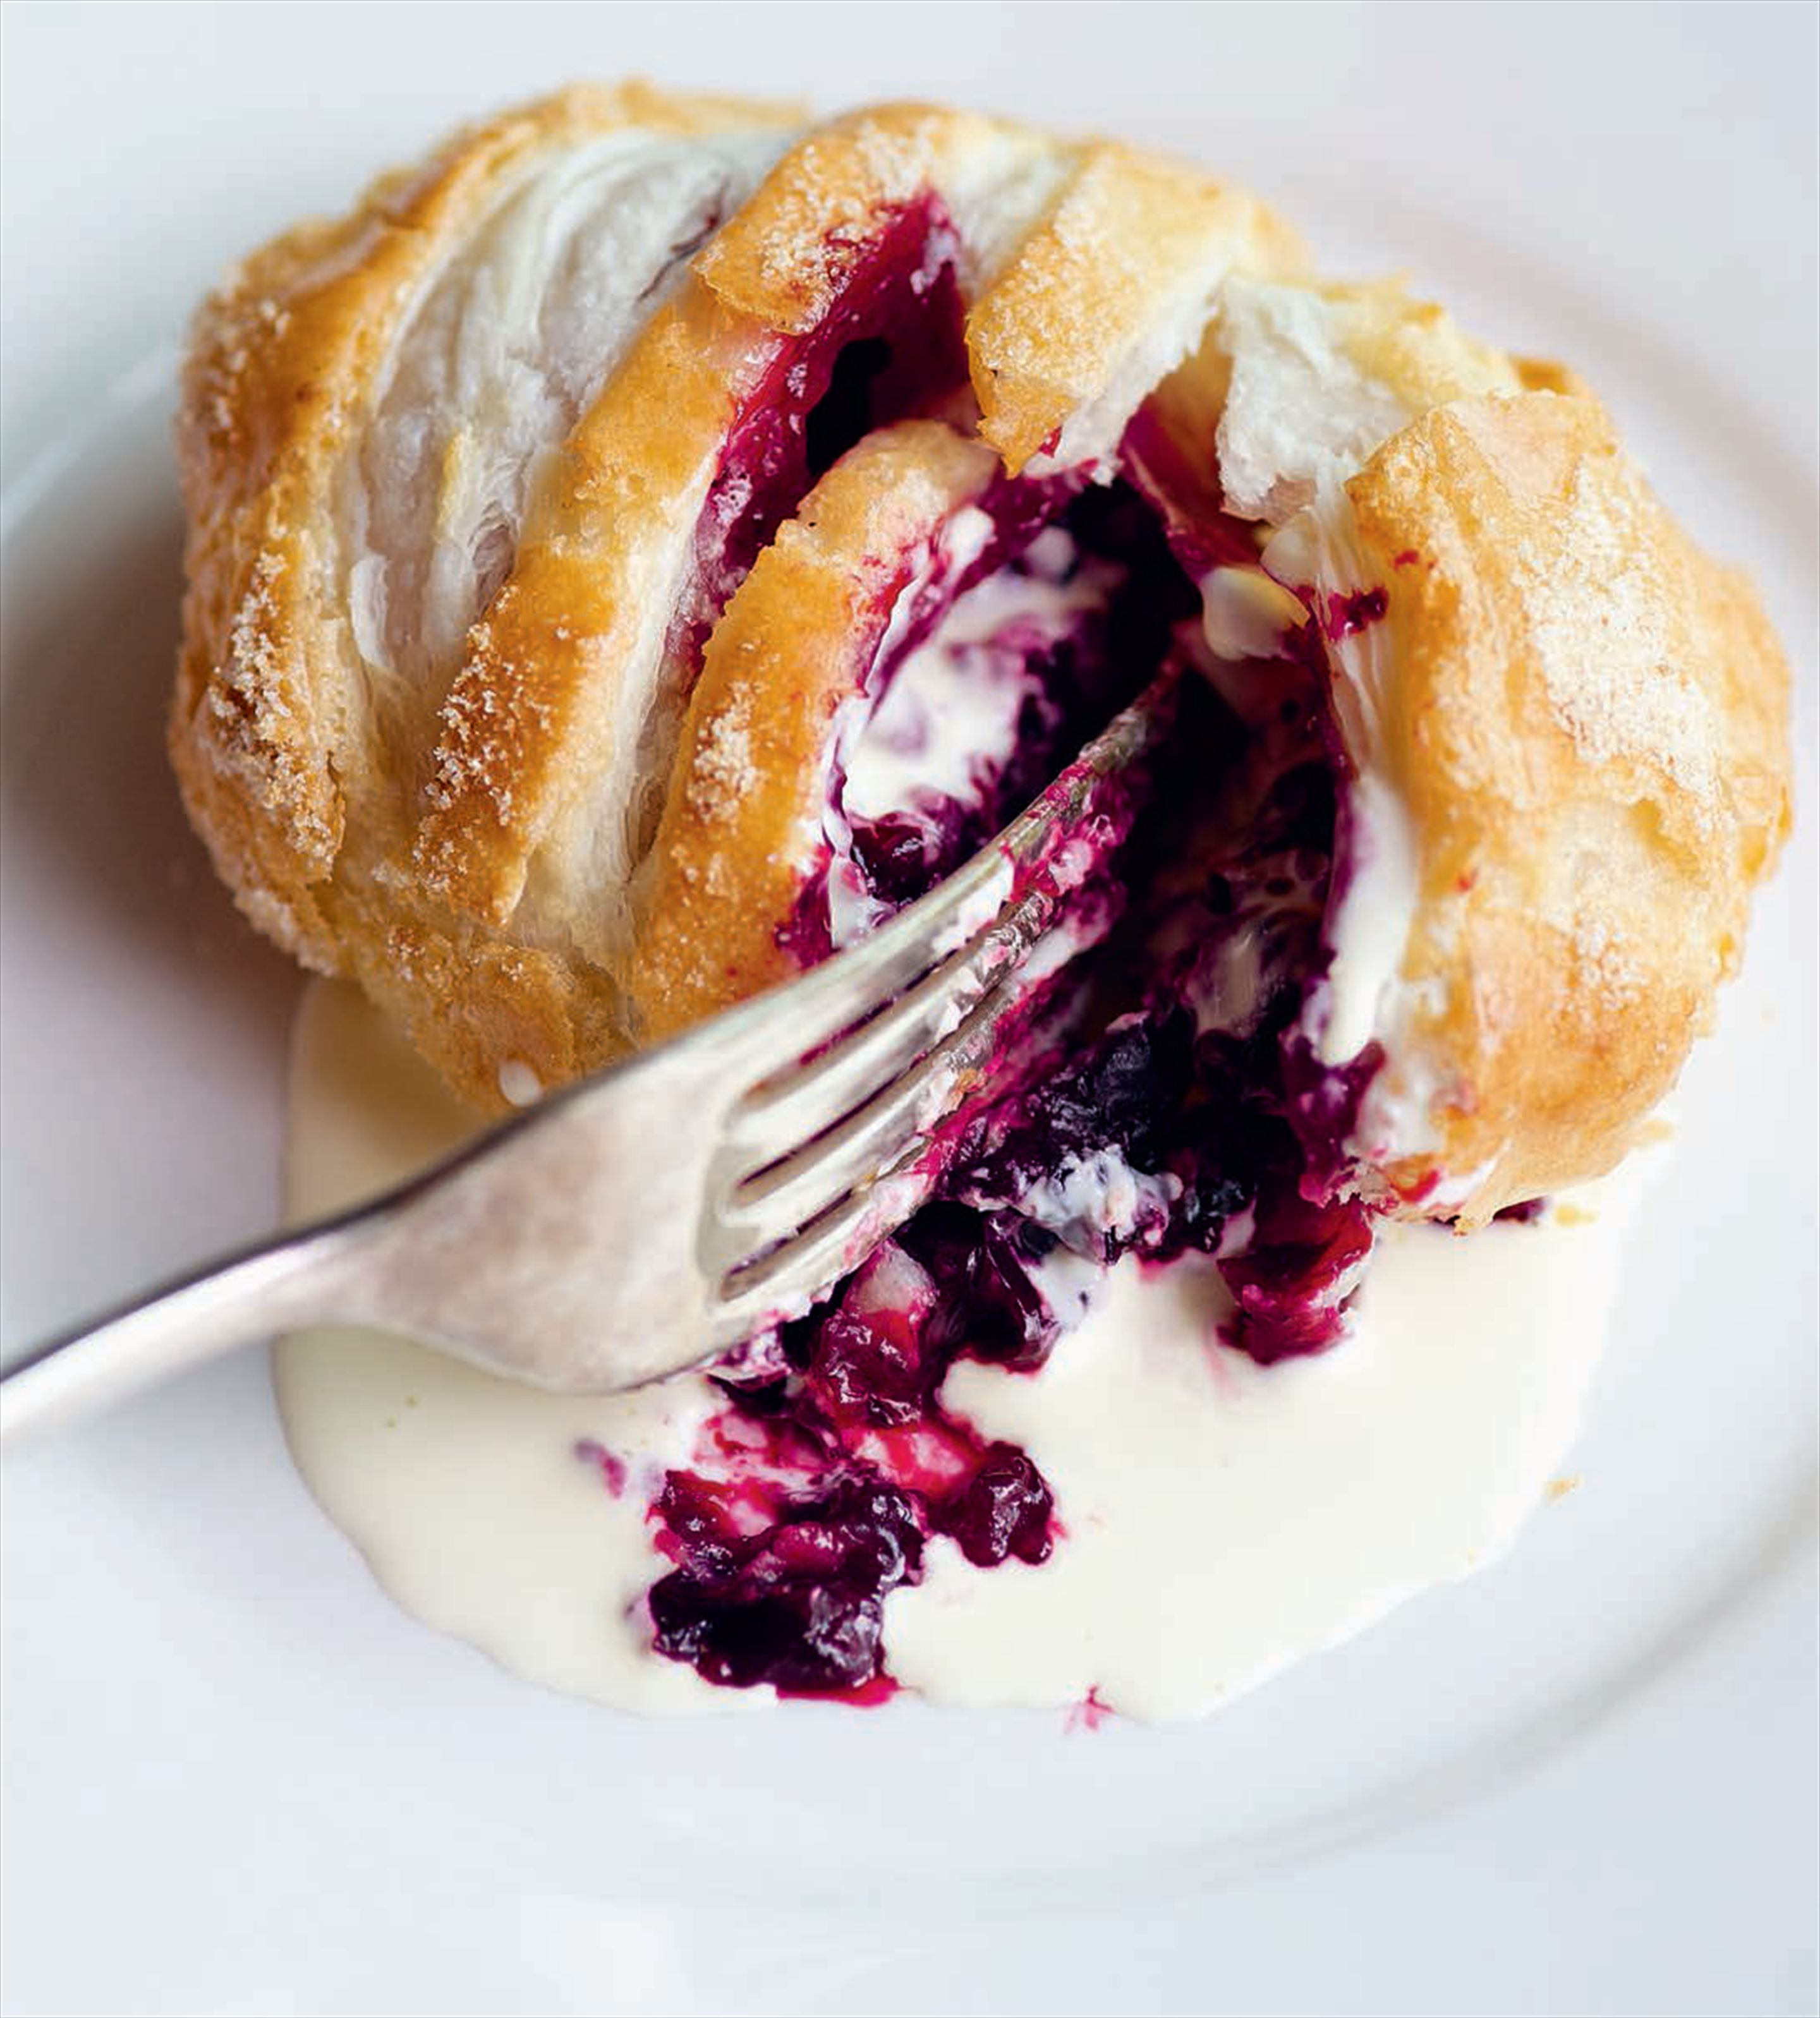 Blackcurrant Eccles cakes